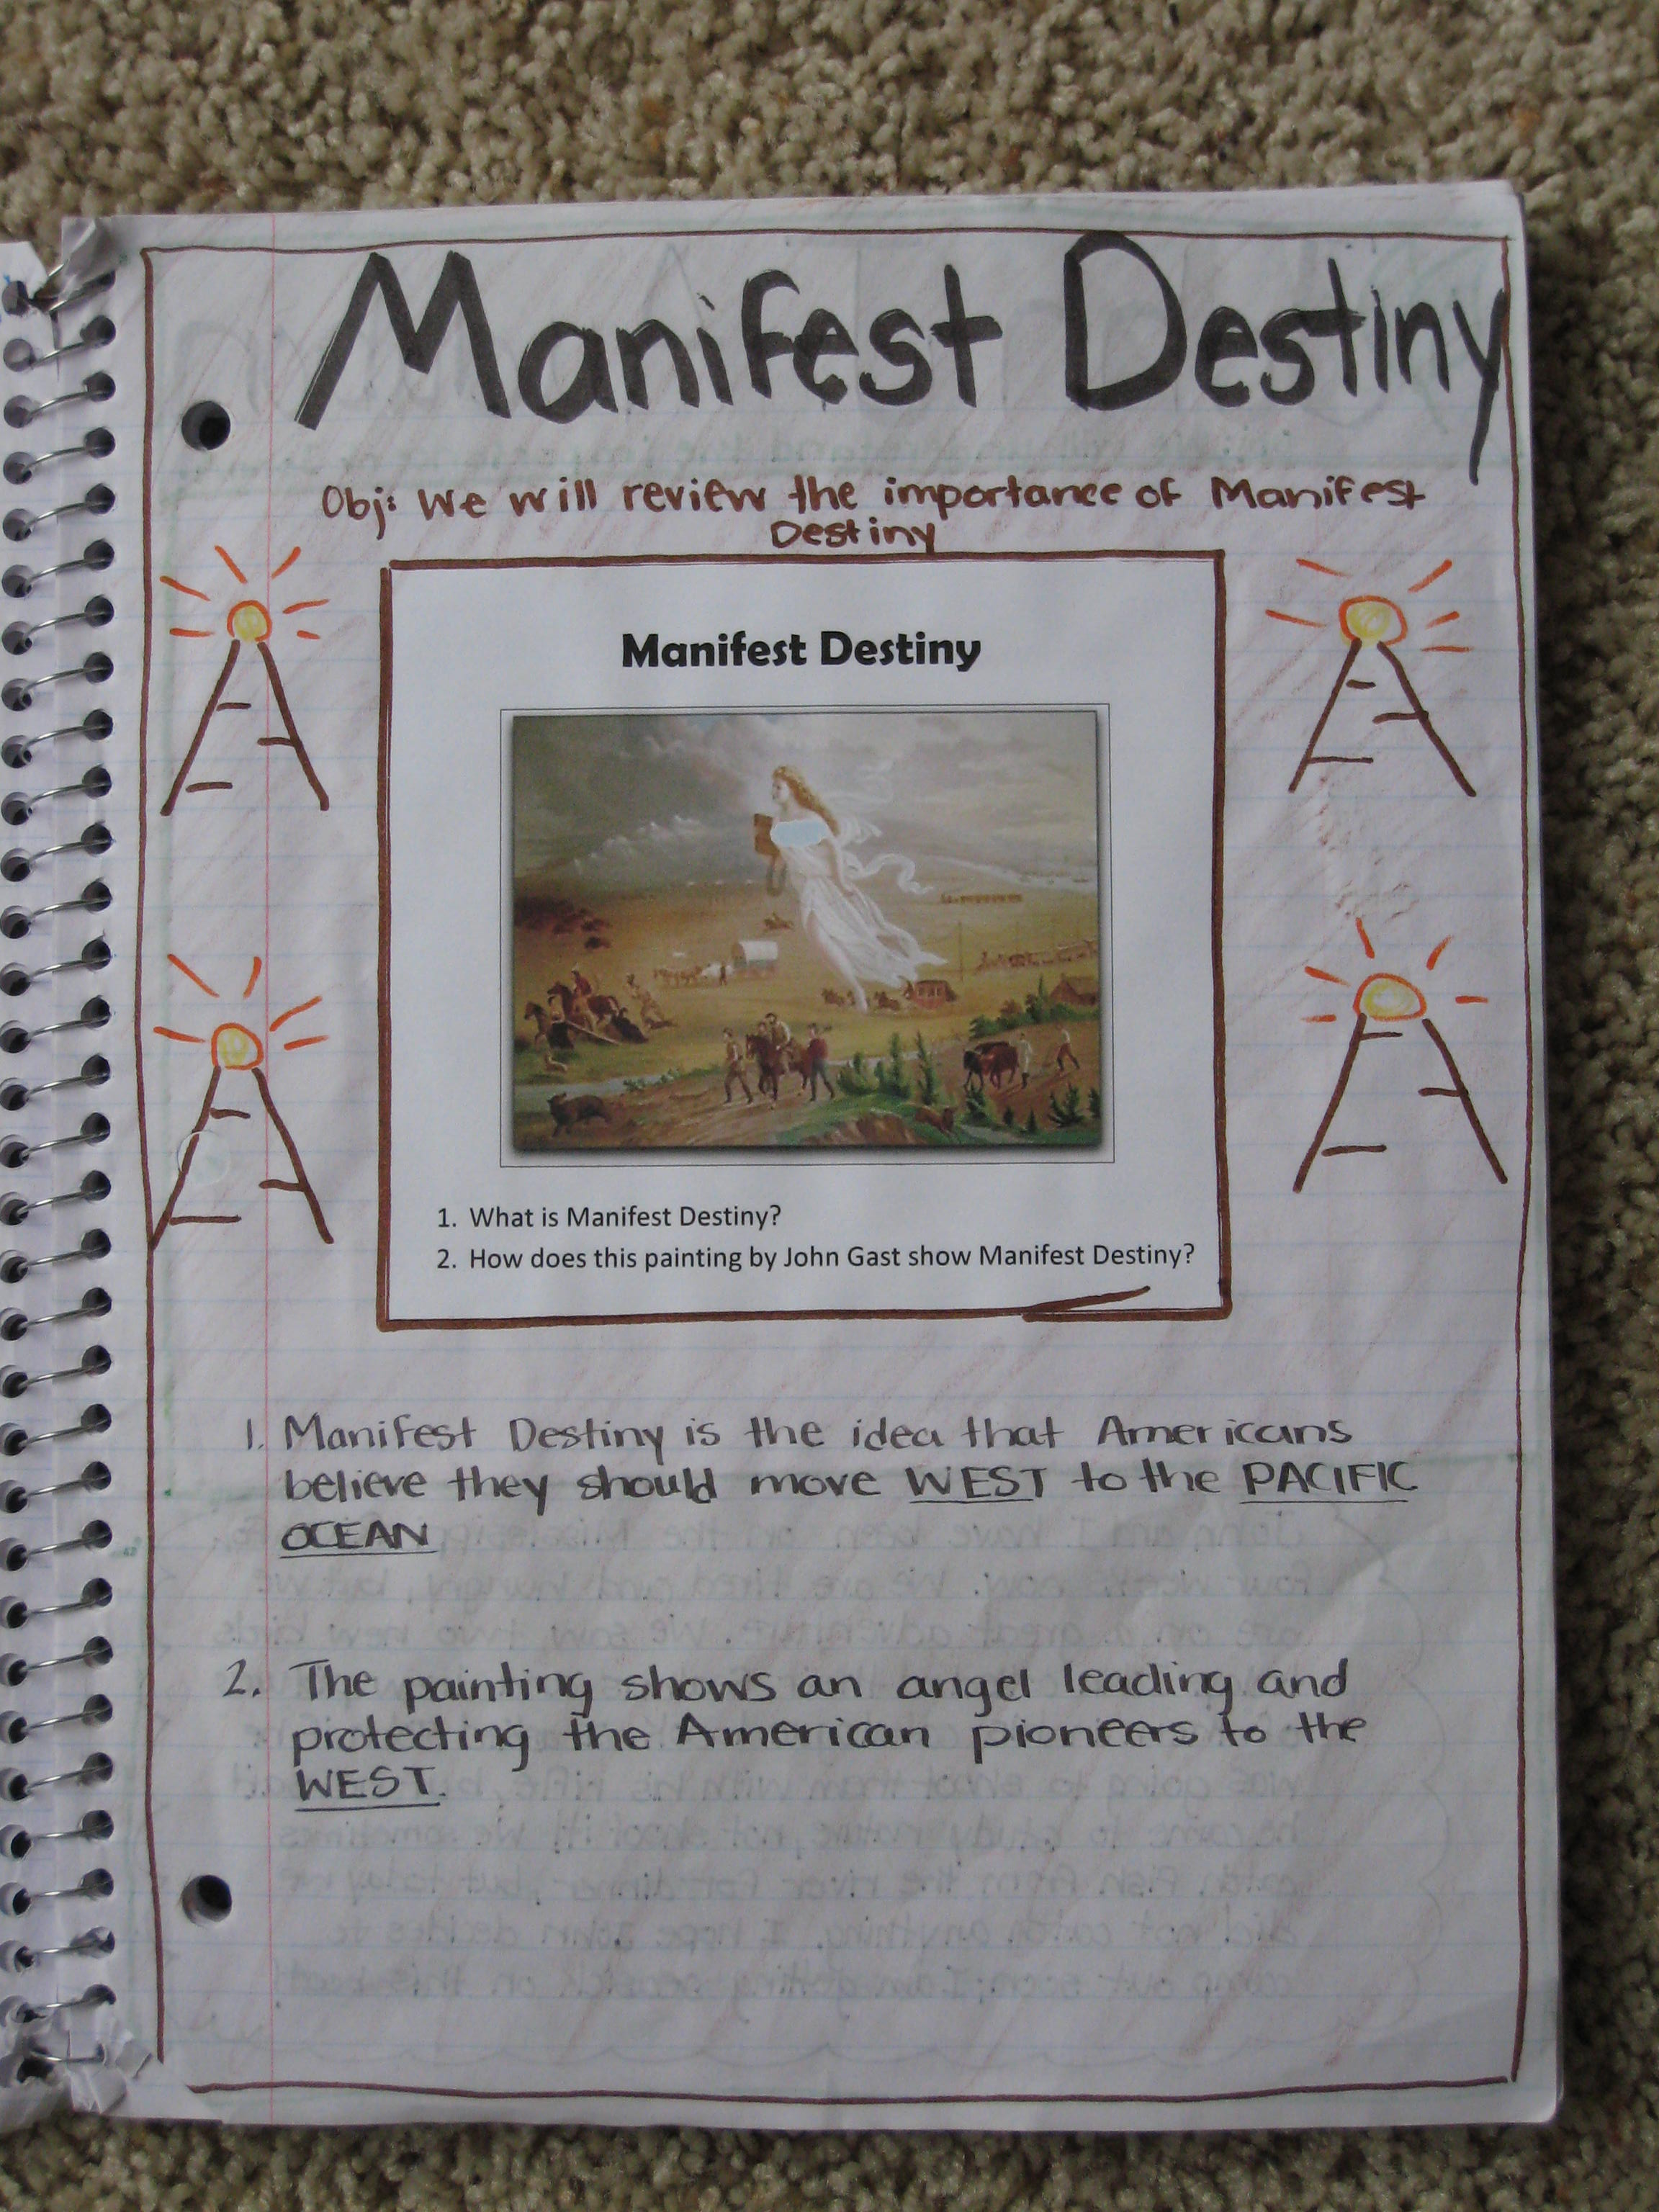 the history of manifest destiny history essay A symbol of manifest destiny, the figure columbia moves across the land in advance of settlers, replacing darkness with light and ignorance with civilization.